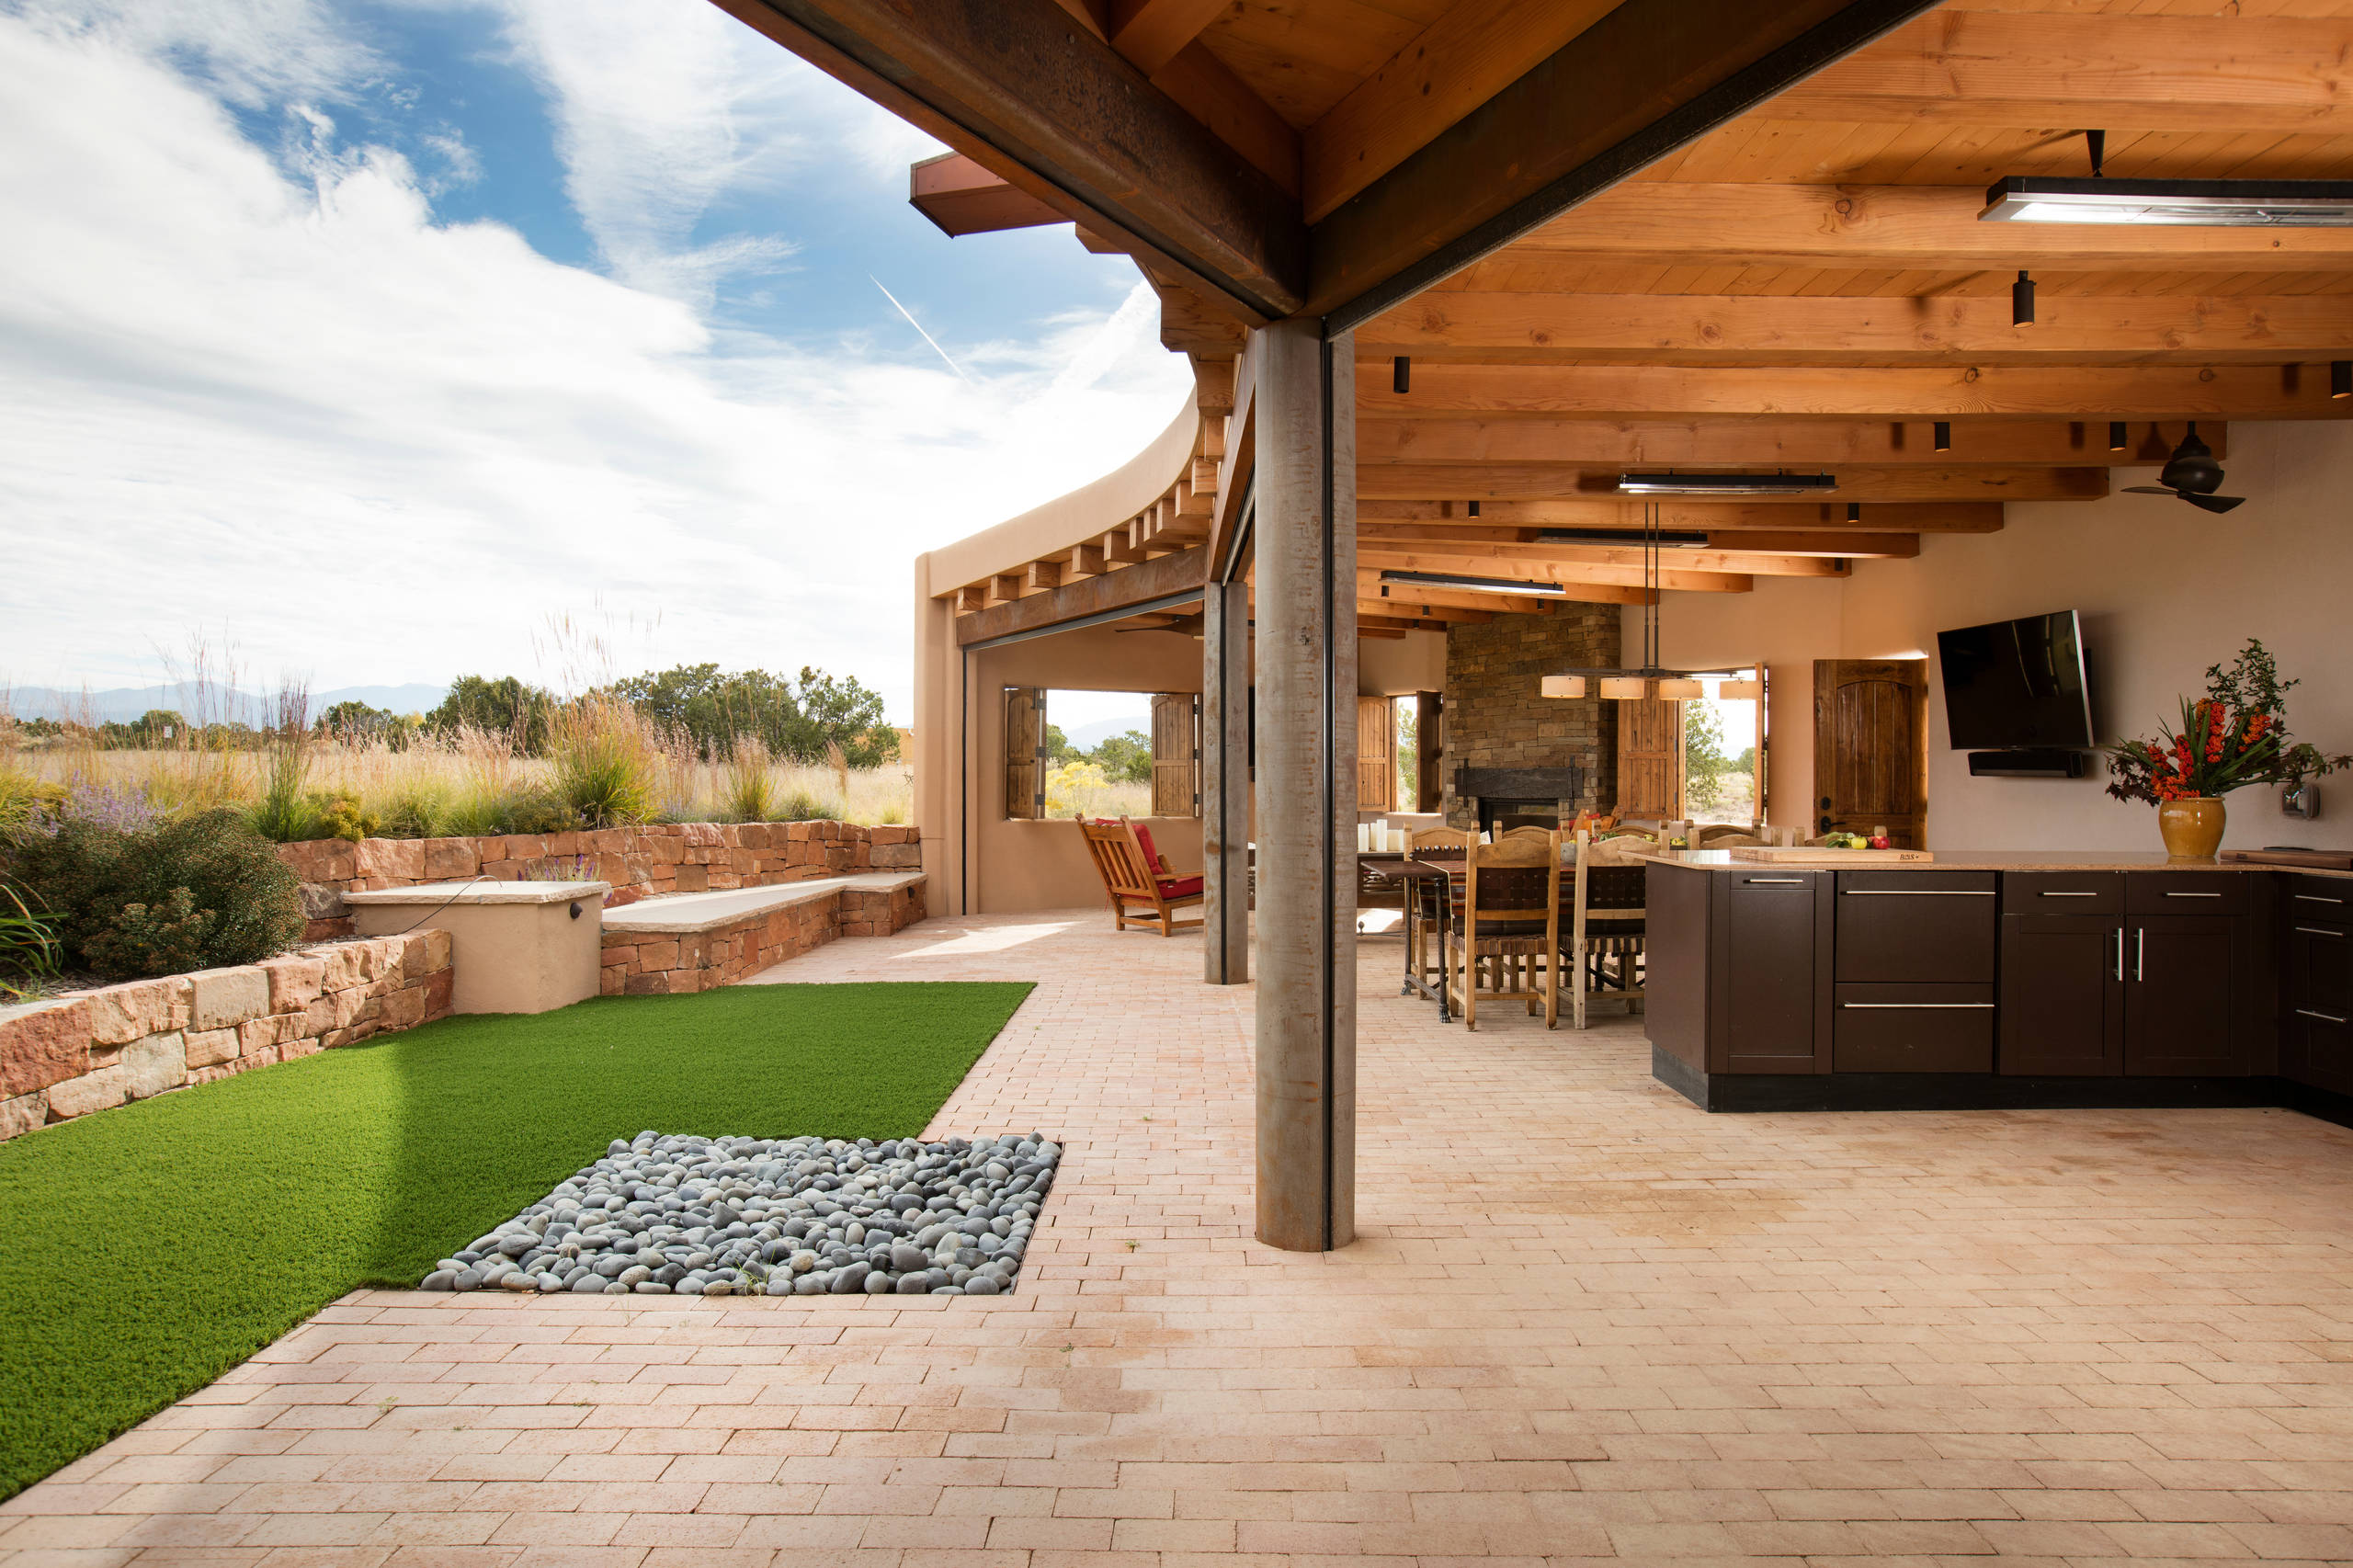 Room with a View: Outdoor Lounge and Kitchen